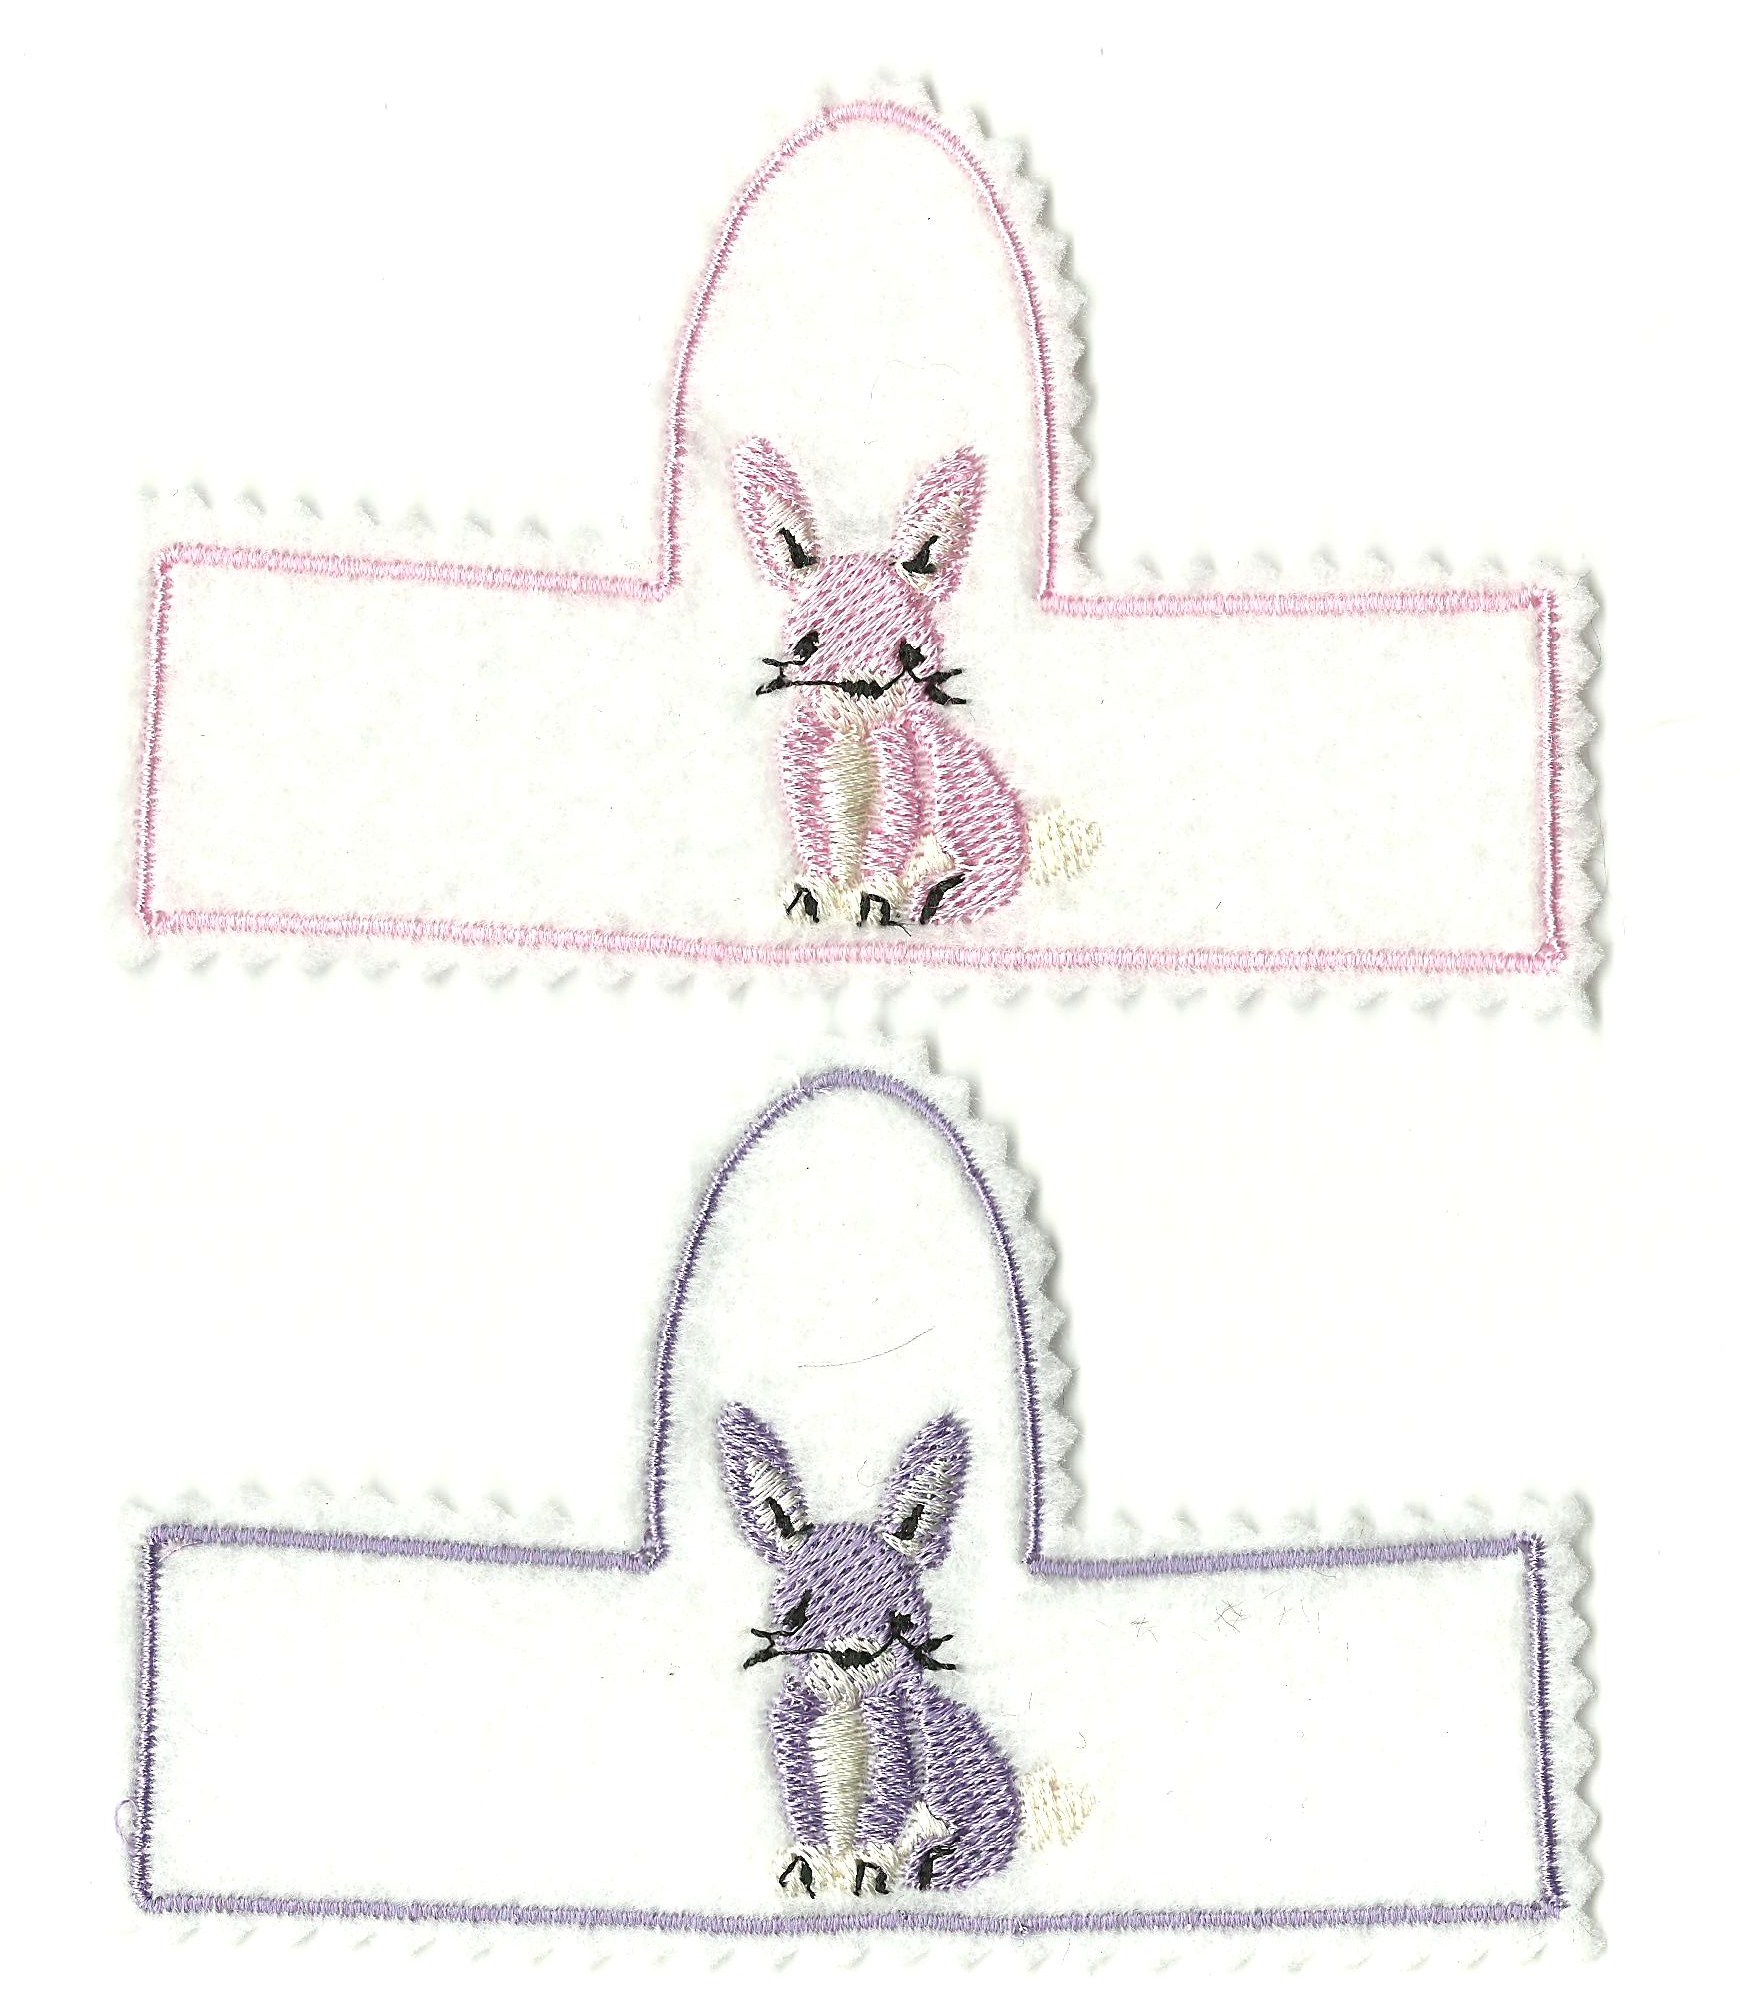 Cute Embroidery Patterns Free Embroidery Designs Cute Embroidery Designs